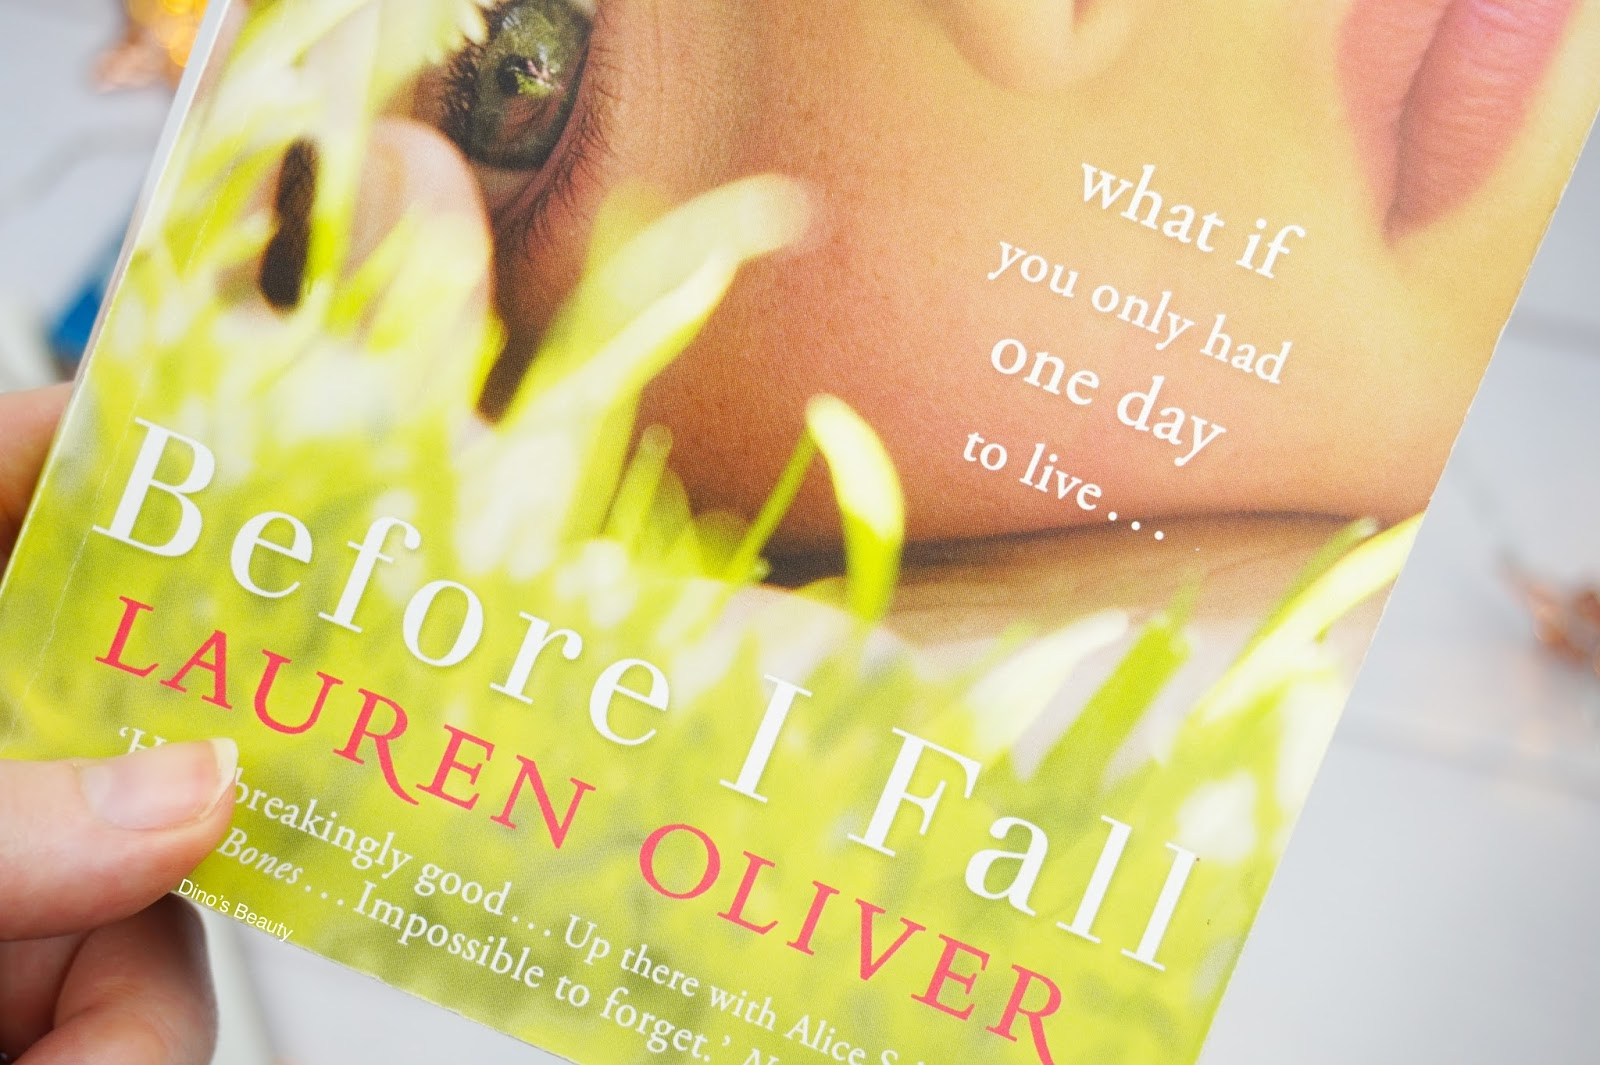 Beauty, Lifestyle, Beauty Bloggers, Bloggers, Lifestyle Bloggers, 2016, 2016 Favourites, Before I Fall, Lauren Oliver, Book, Book Blogger